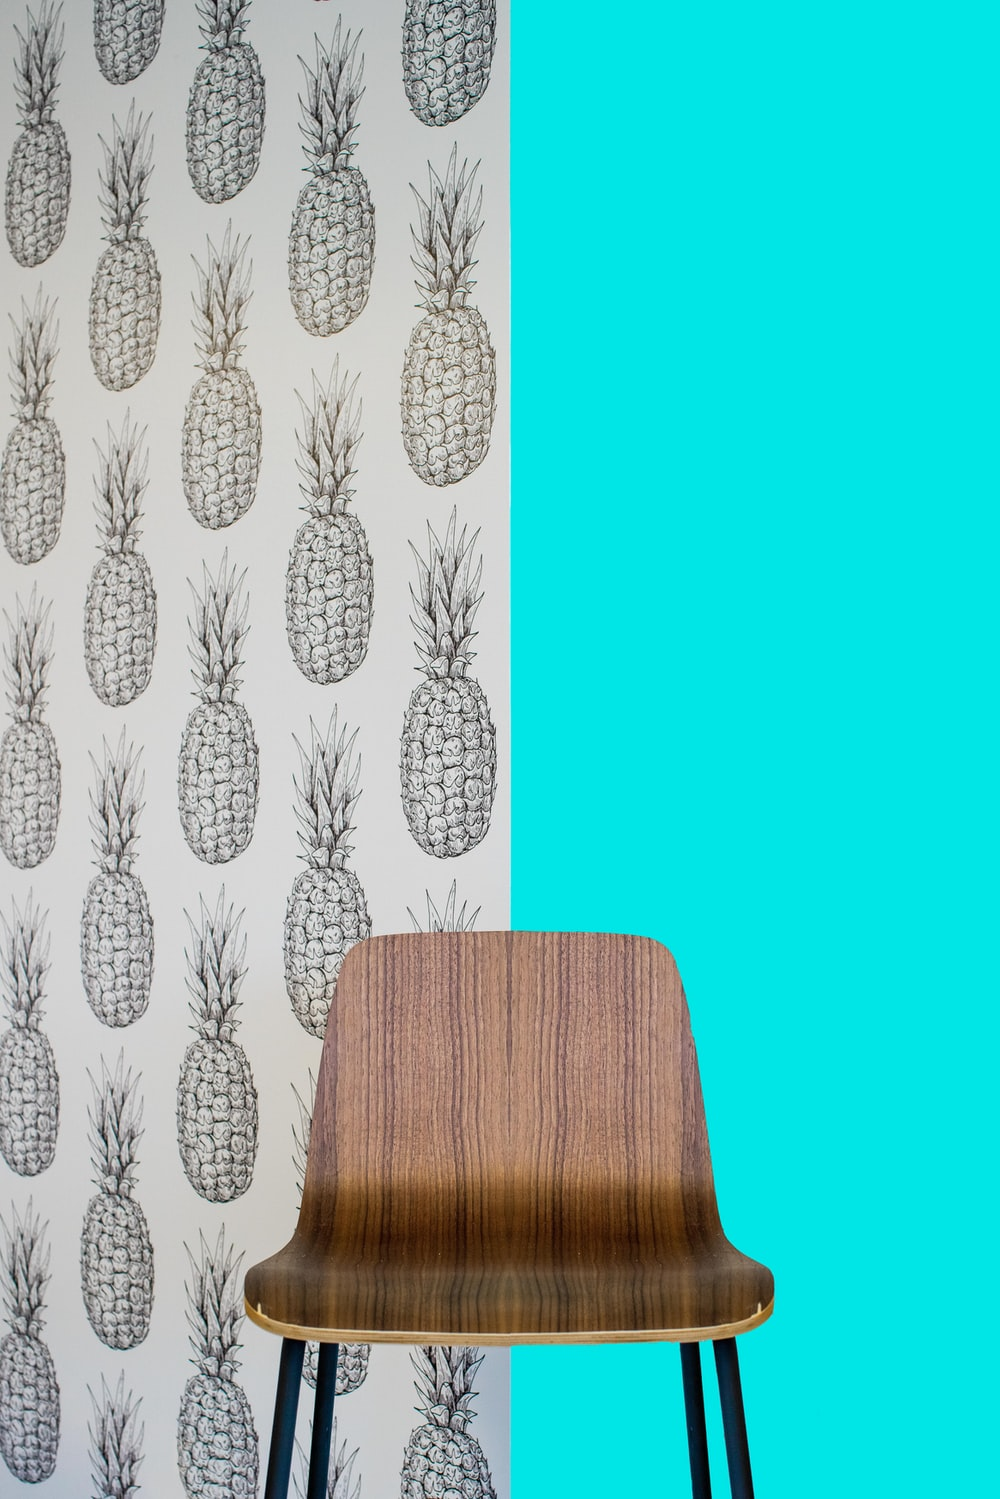 brown wooden seat beside white and blue floral wall